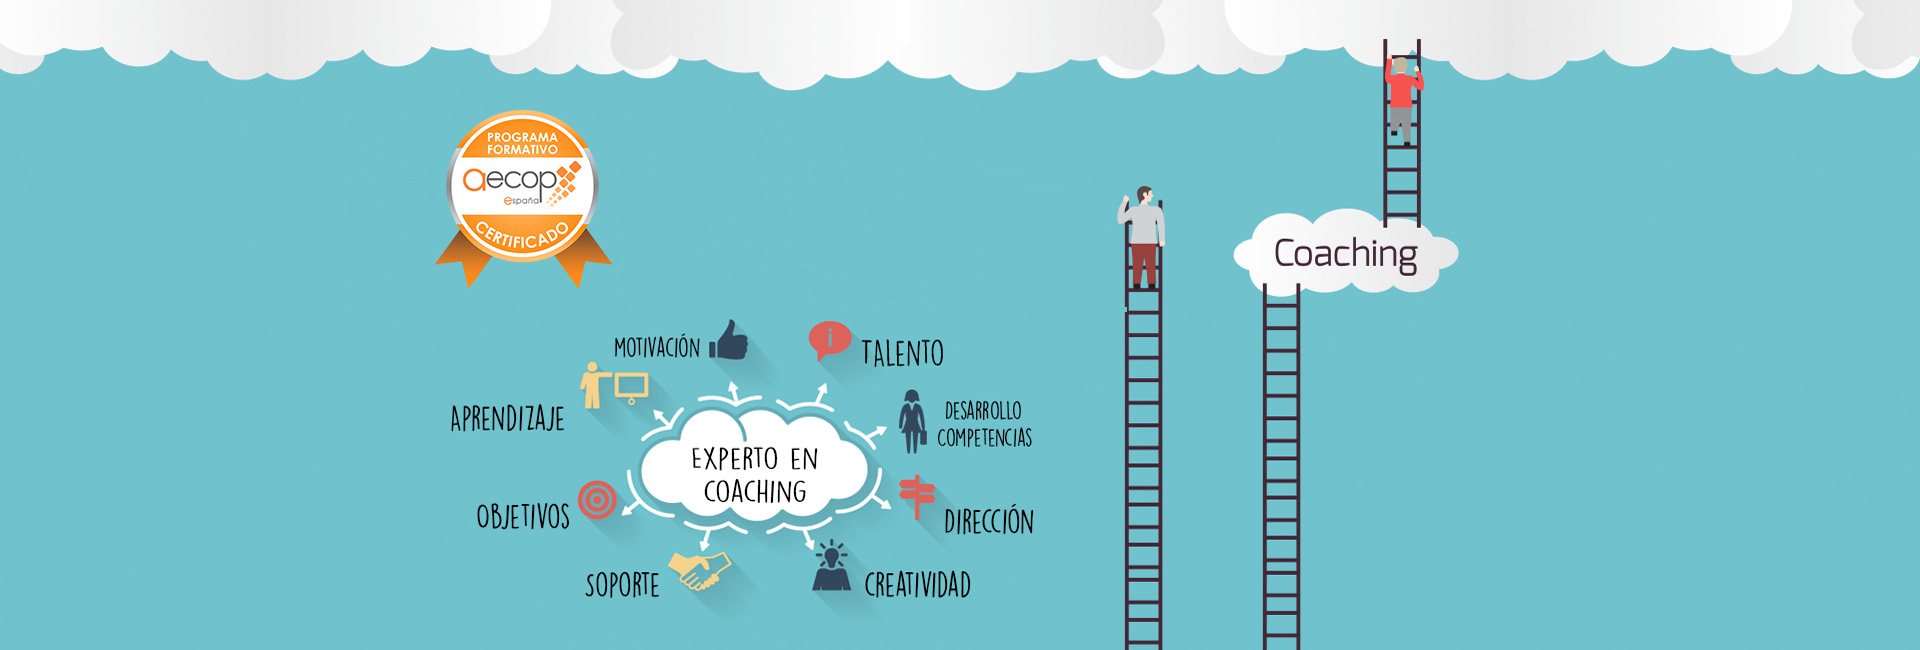 banner experto coaching